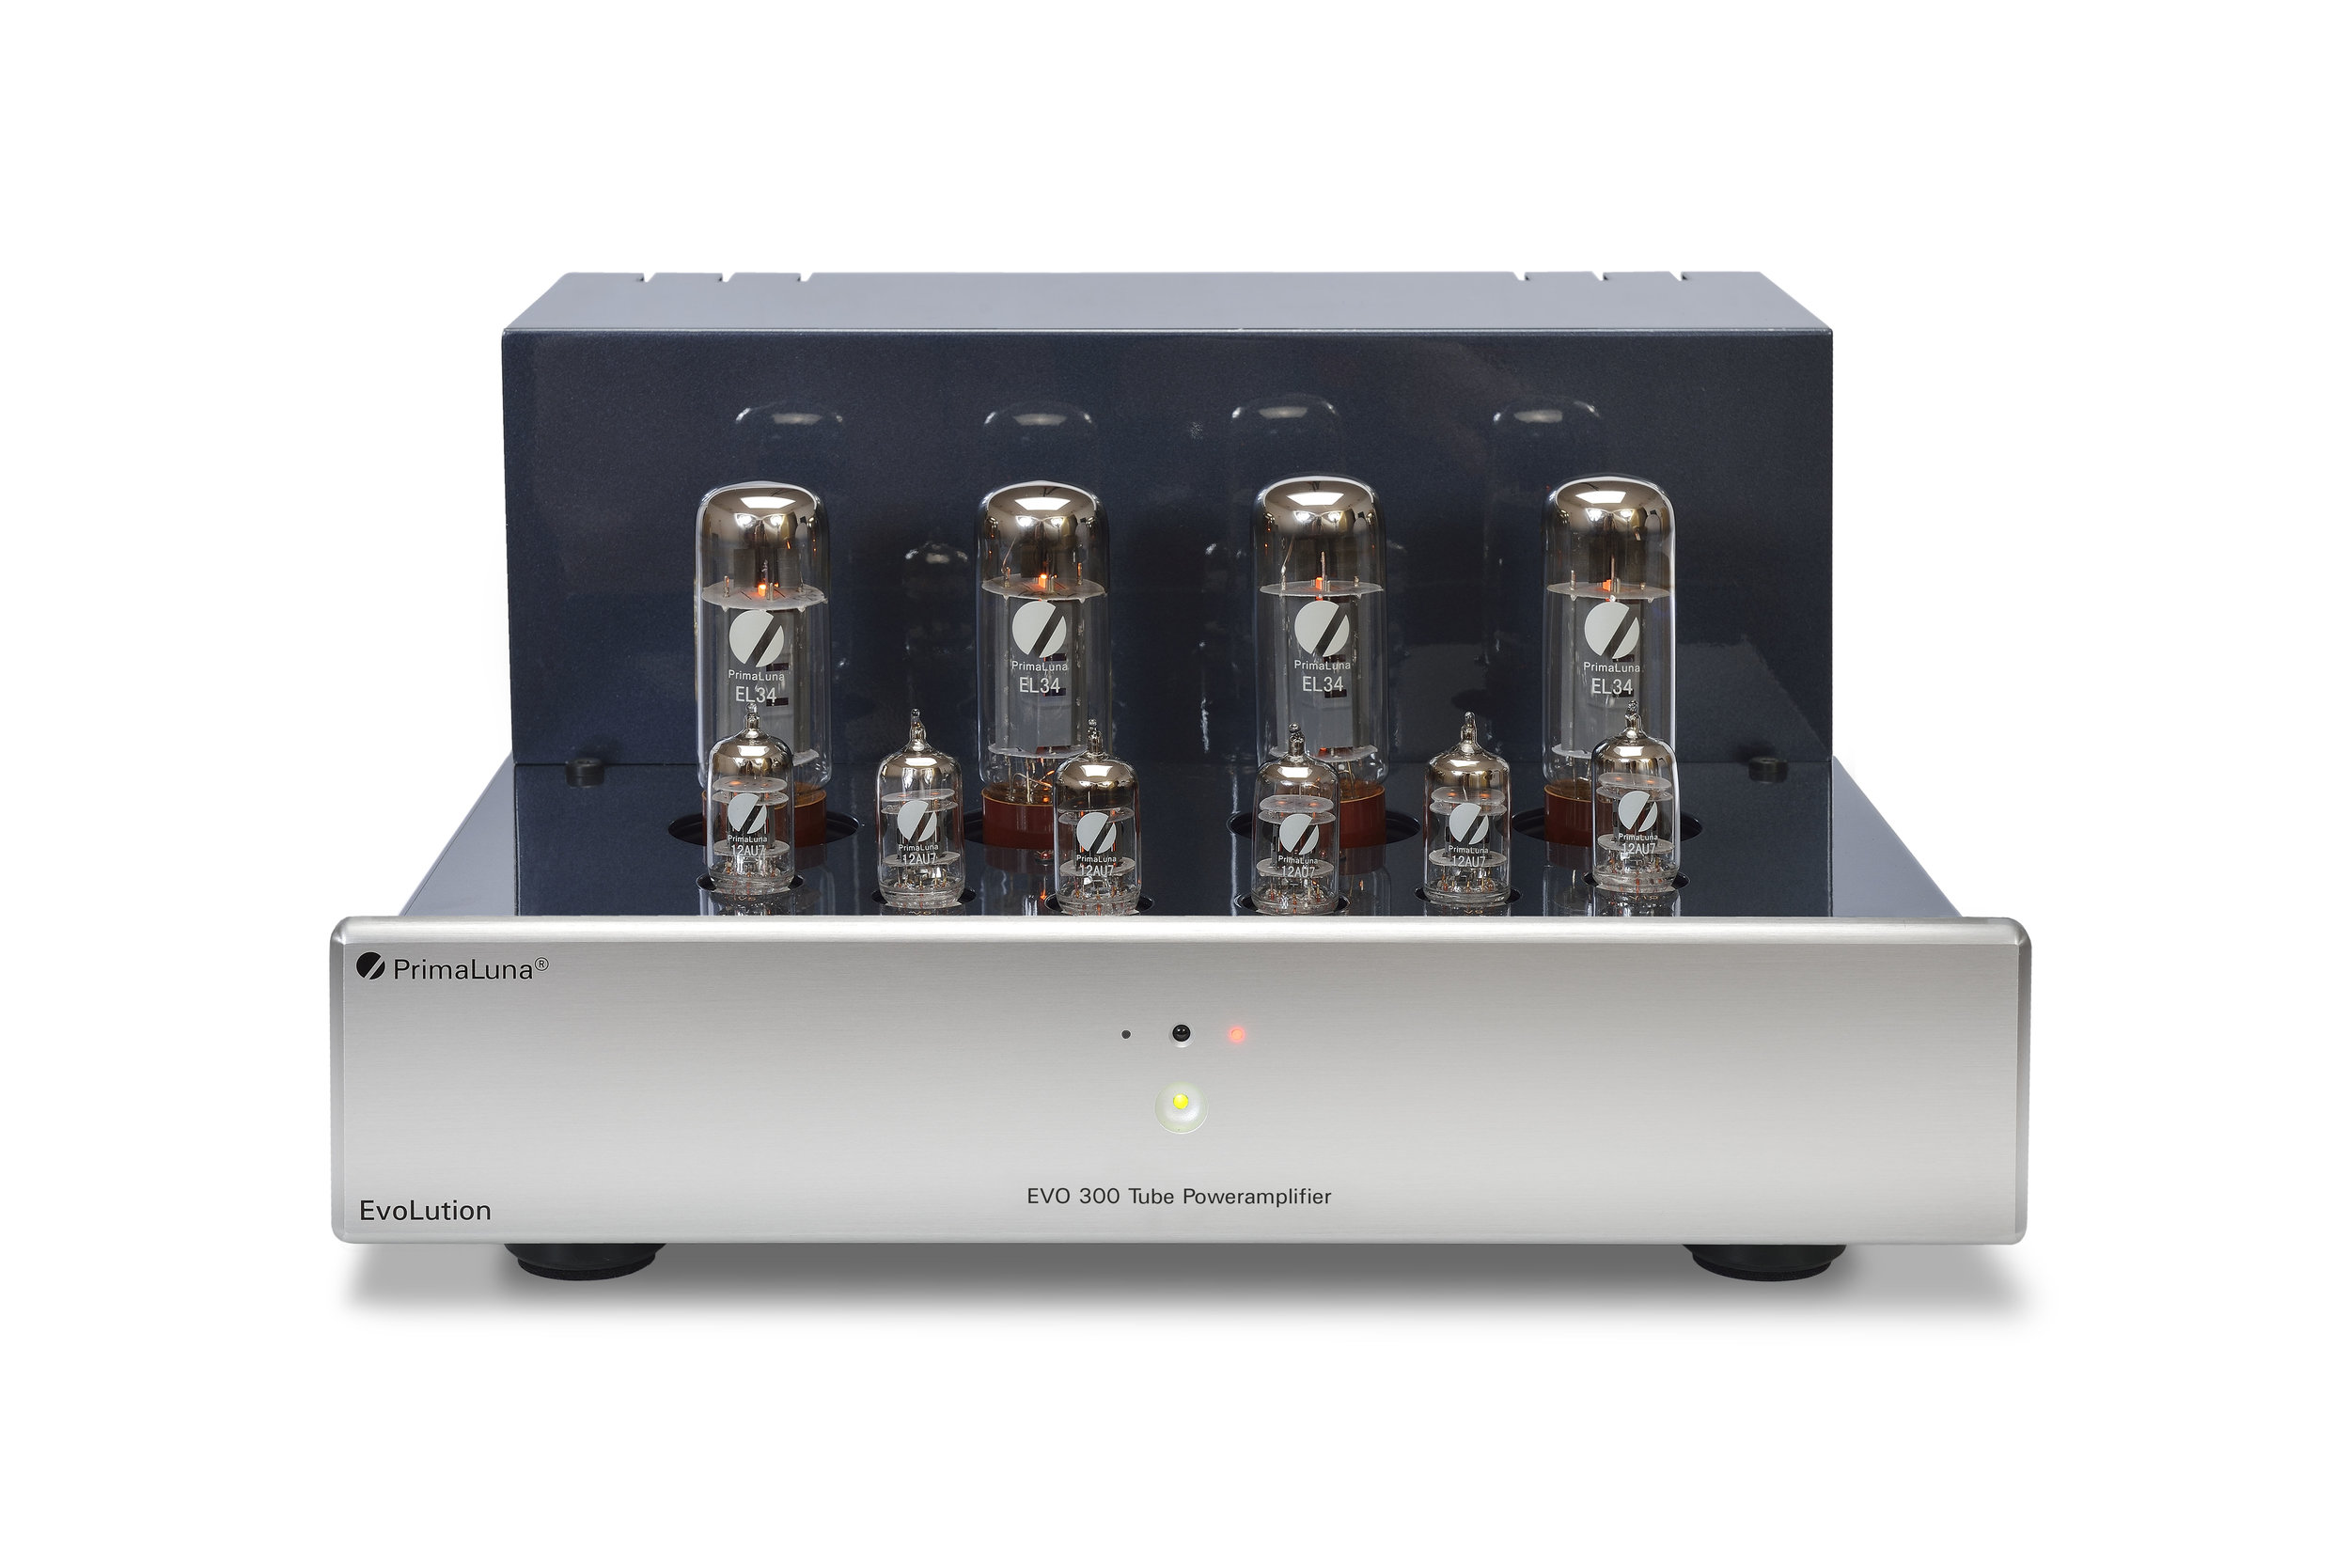 034b - PrimaLuna Evo 300 Tube Poweramplifier - silver - front - without cage - white background.jpg